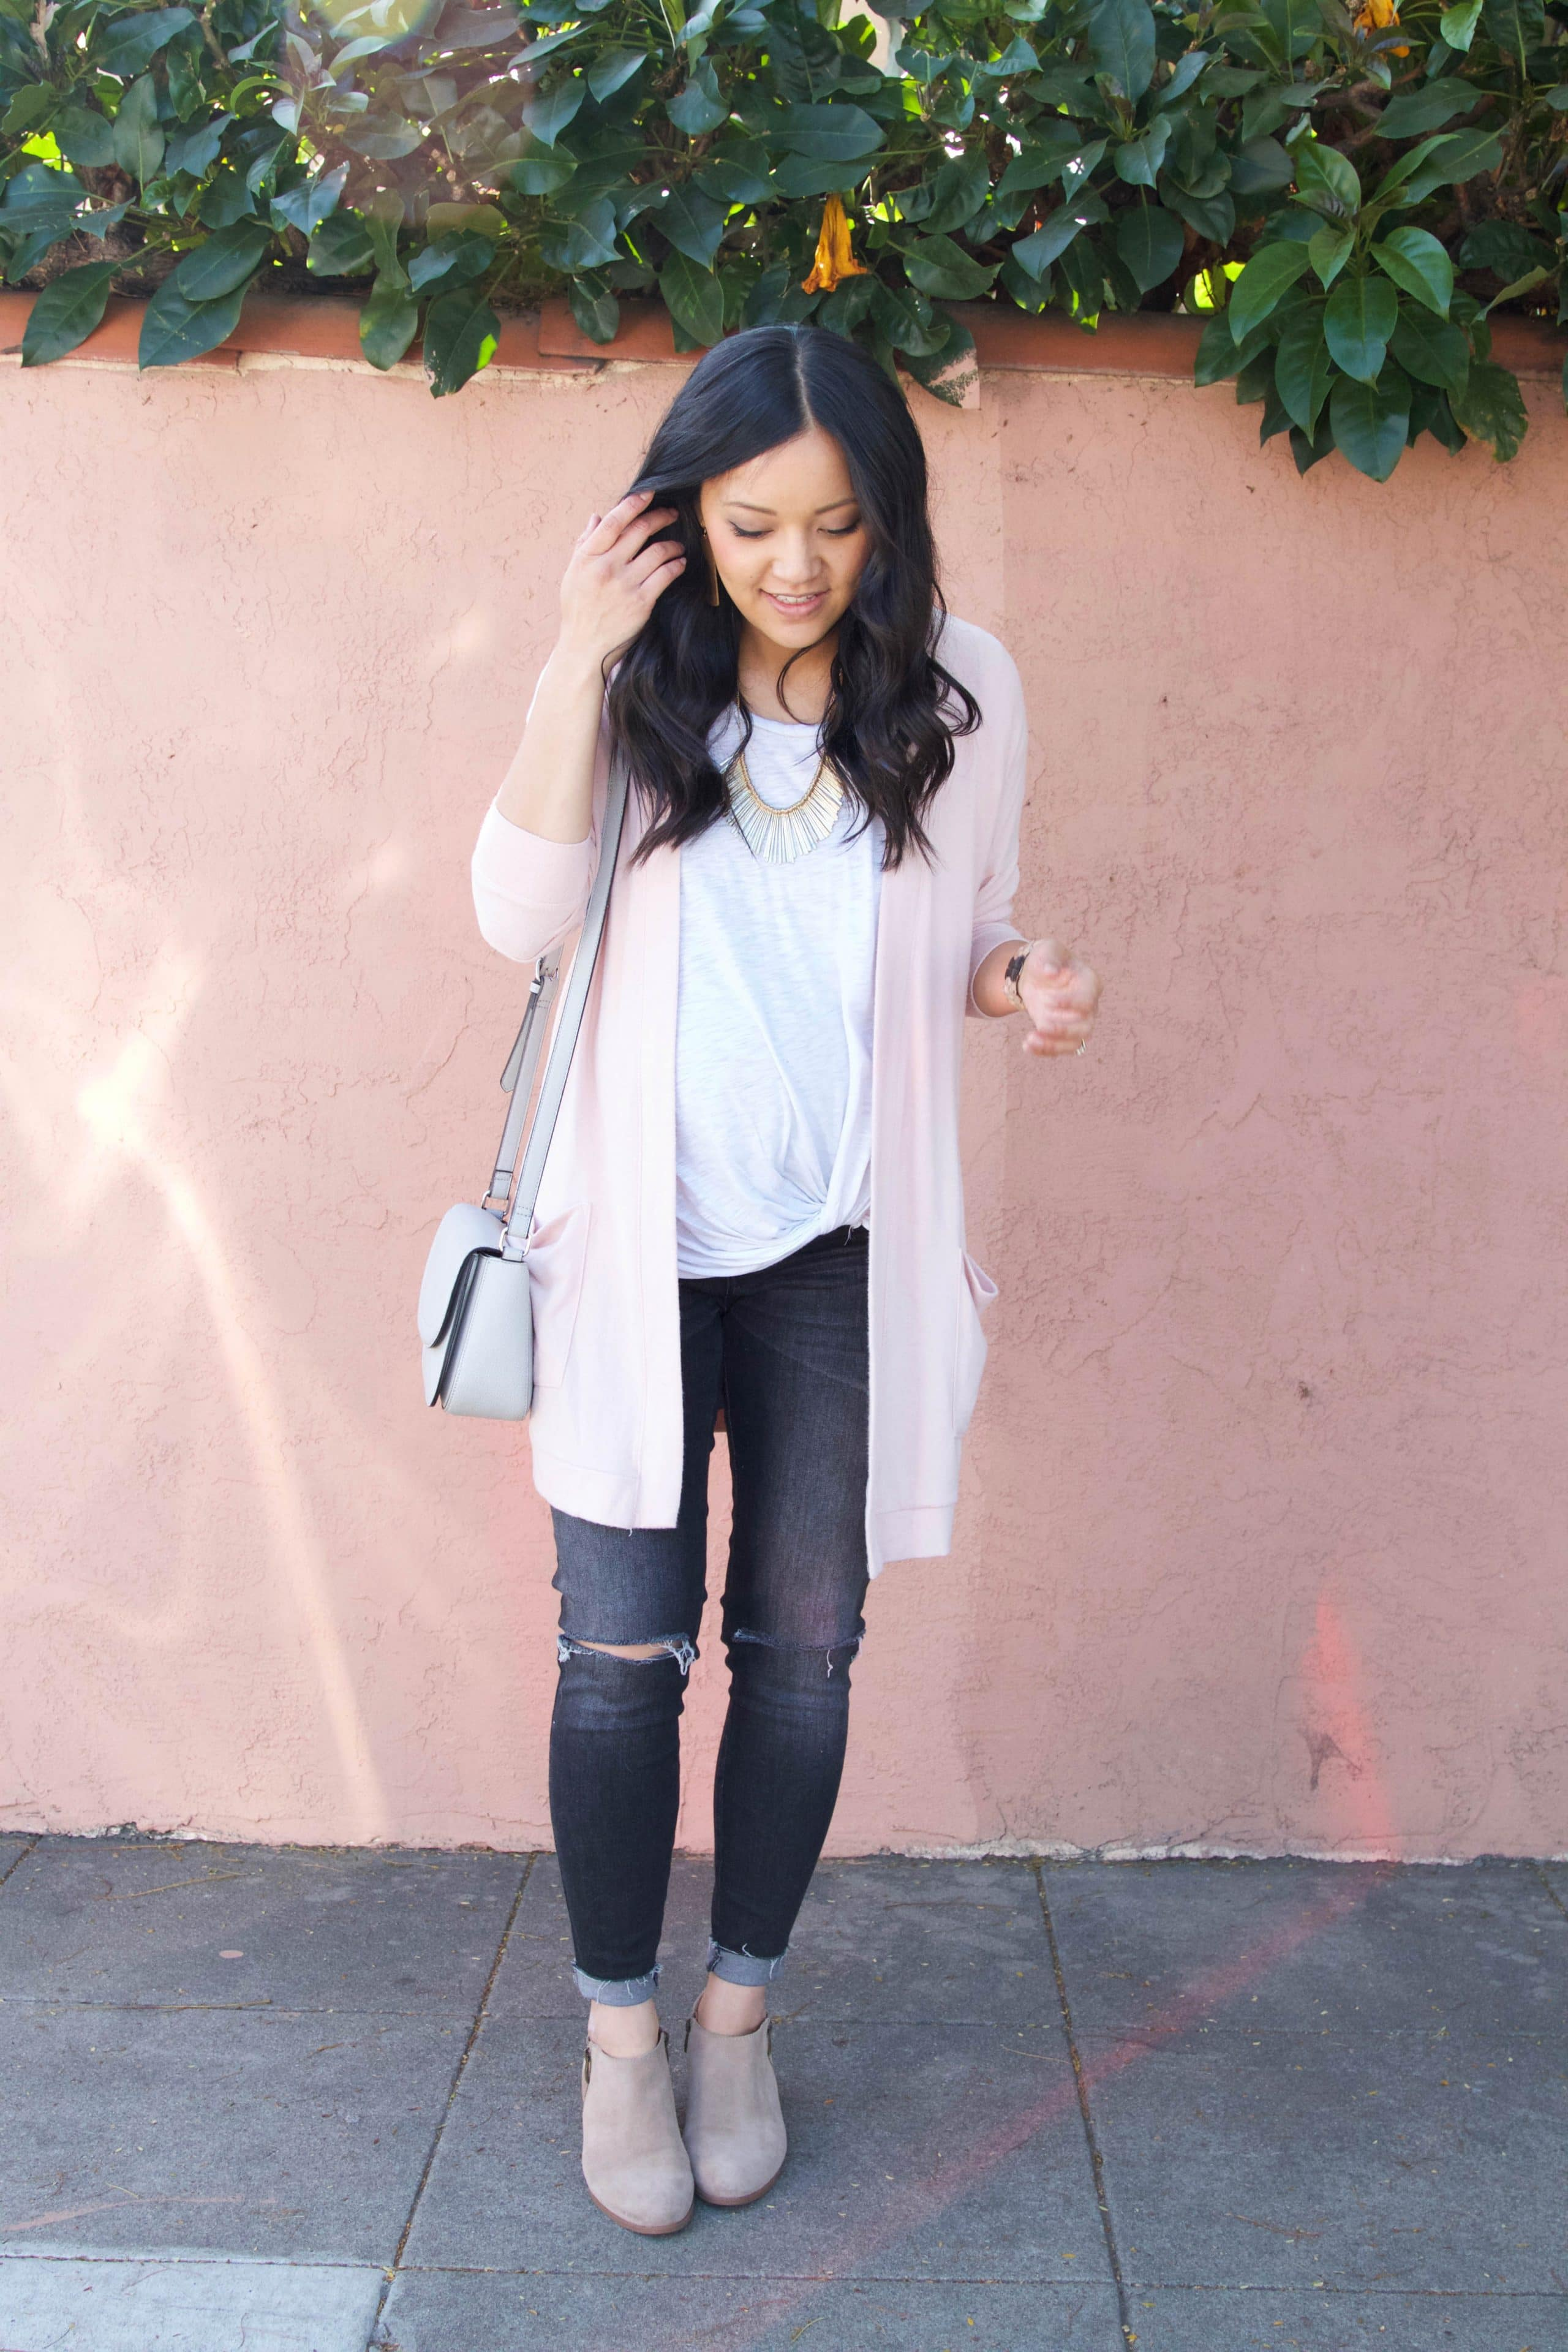 Blush cardigan + twist tee + distressed jeans + booties